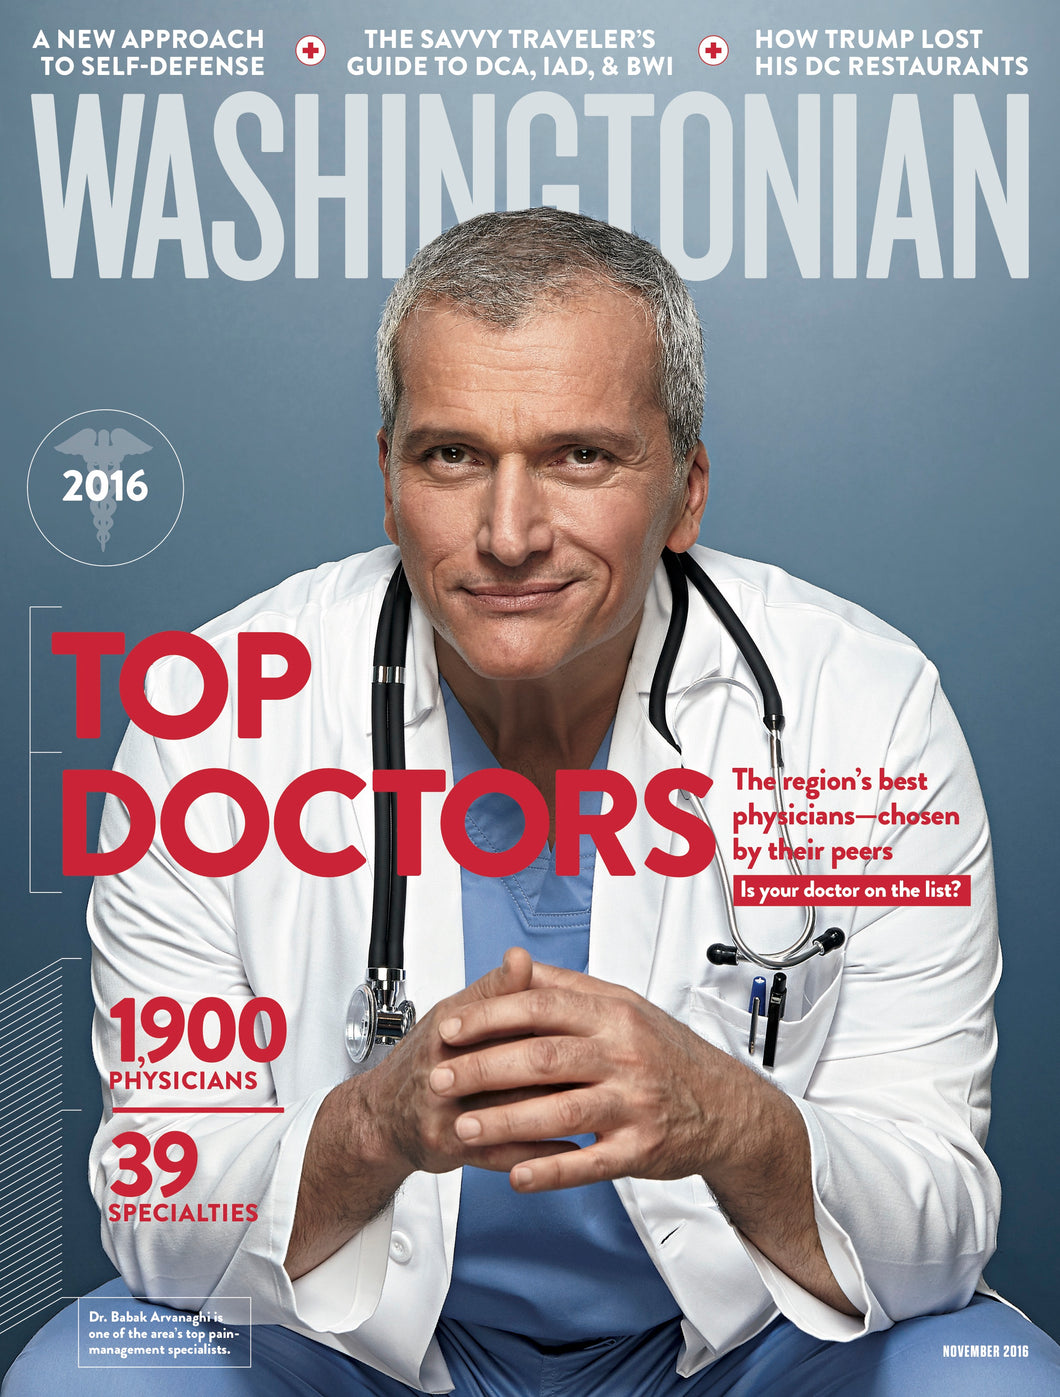 Washingtonian: November 2016 - Top Doctors